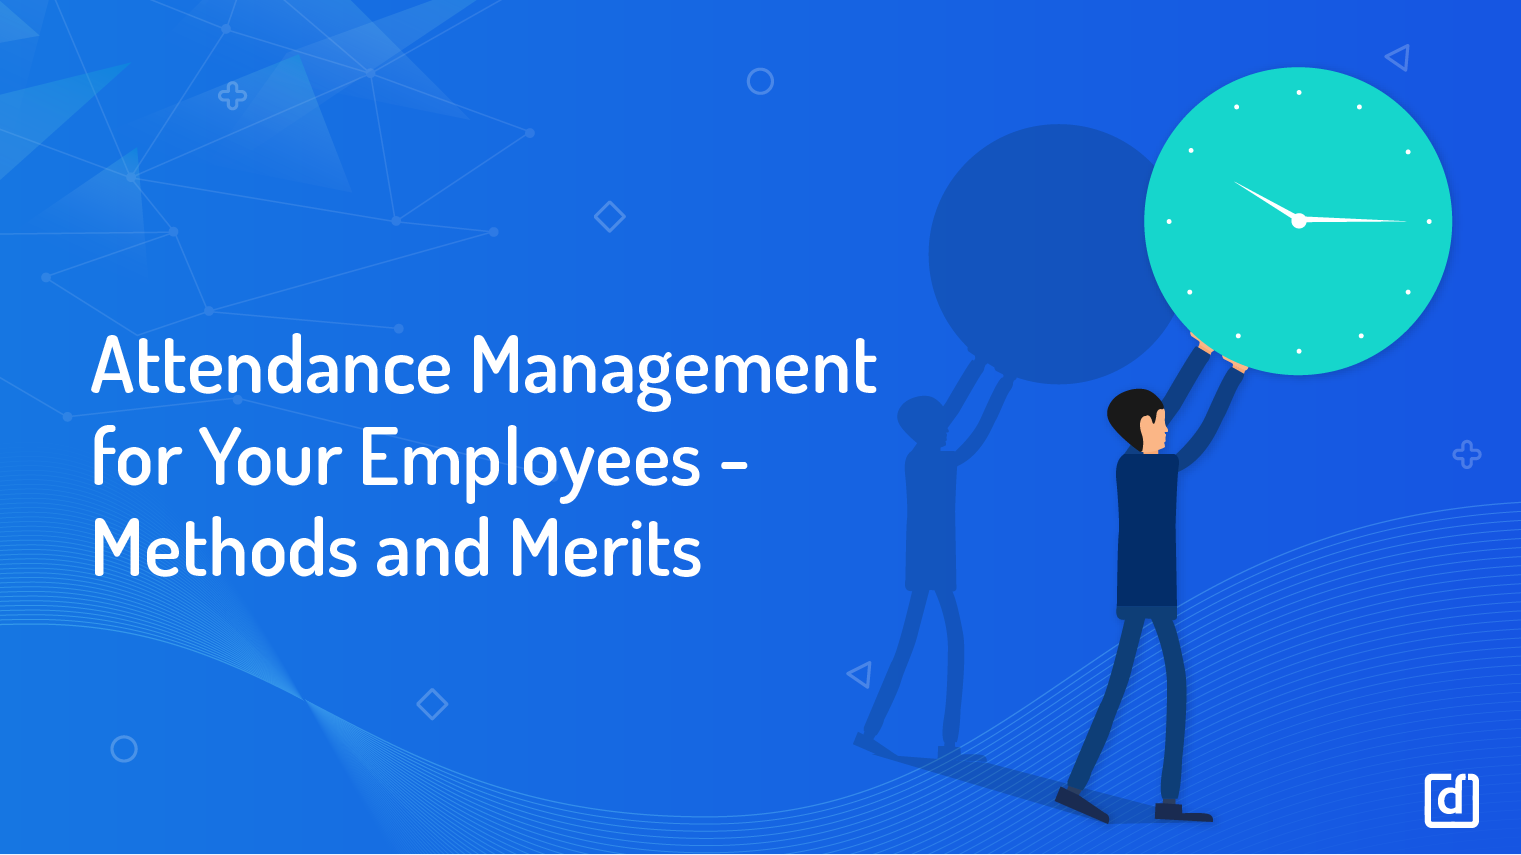 Attendance Management For Your Employees - Methods and Merits